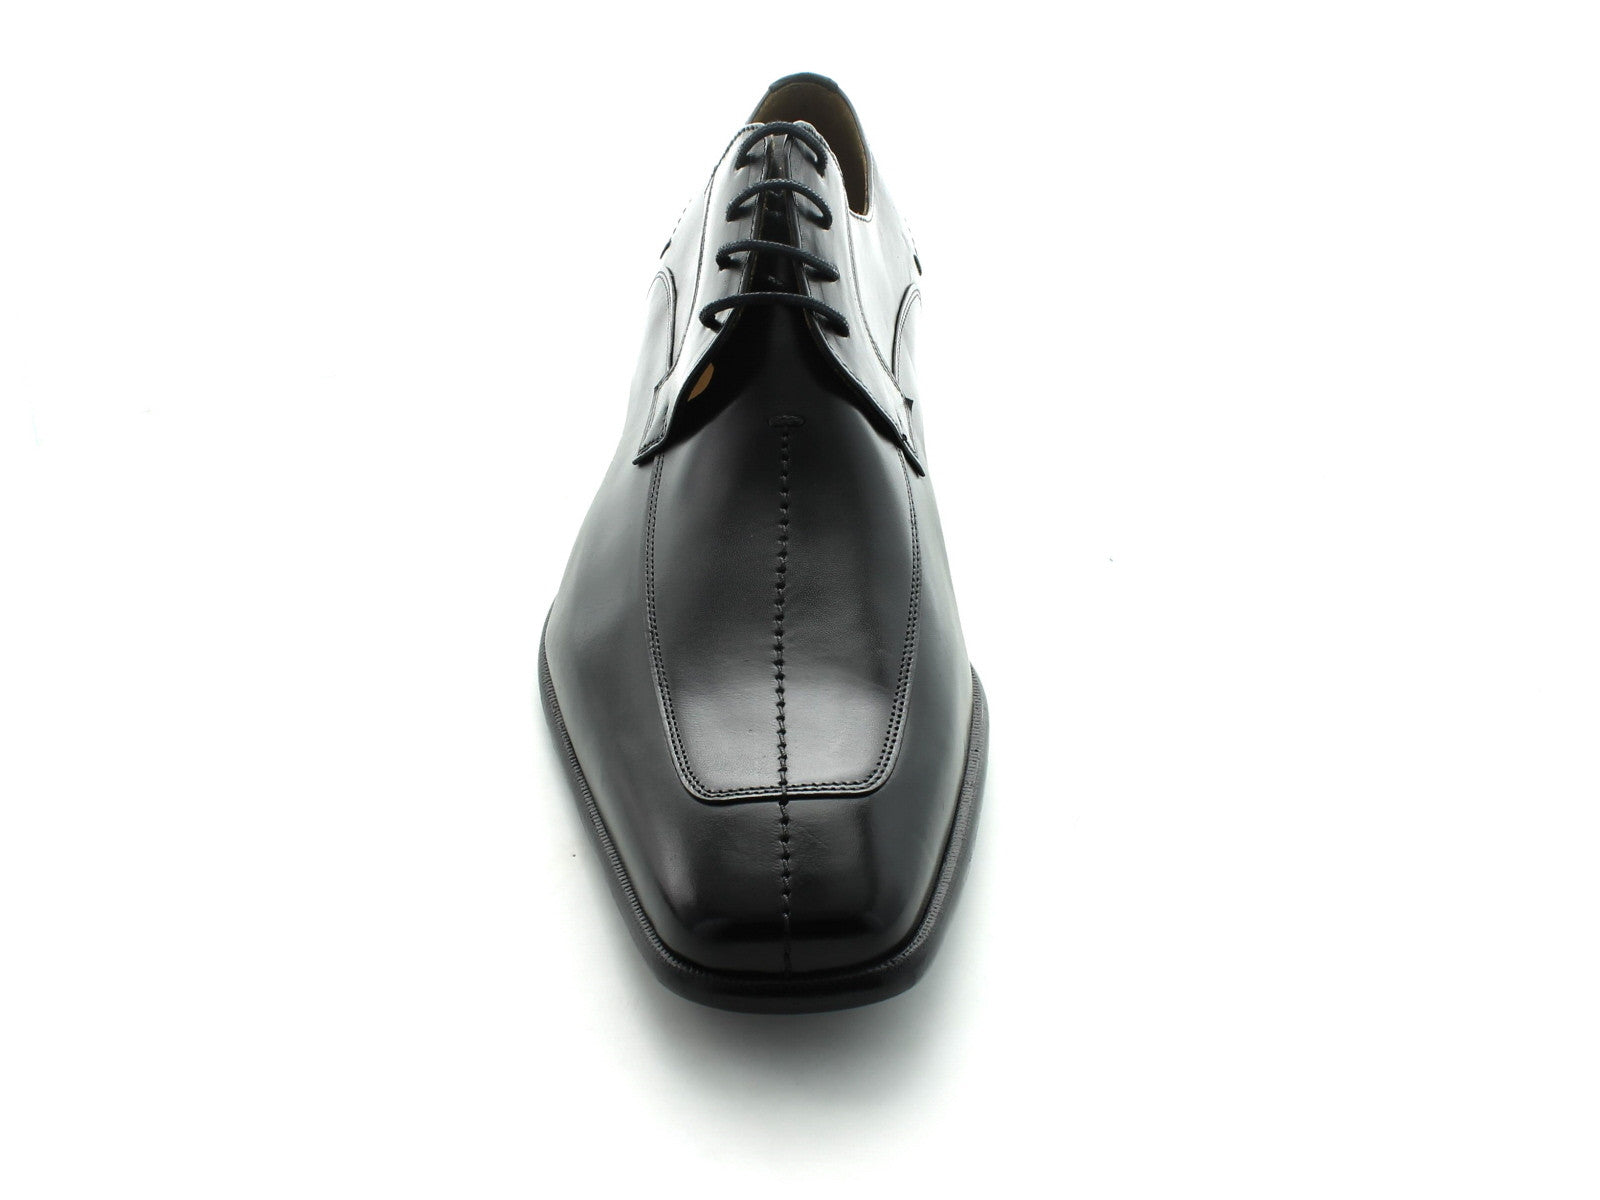 Mezlan Malaga in Black Calfskin front view